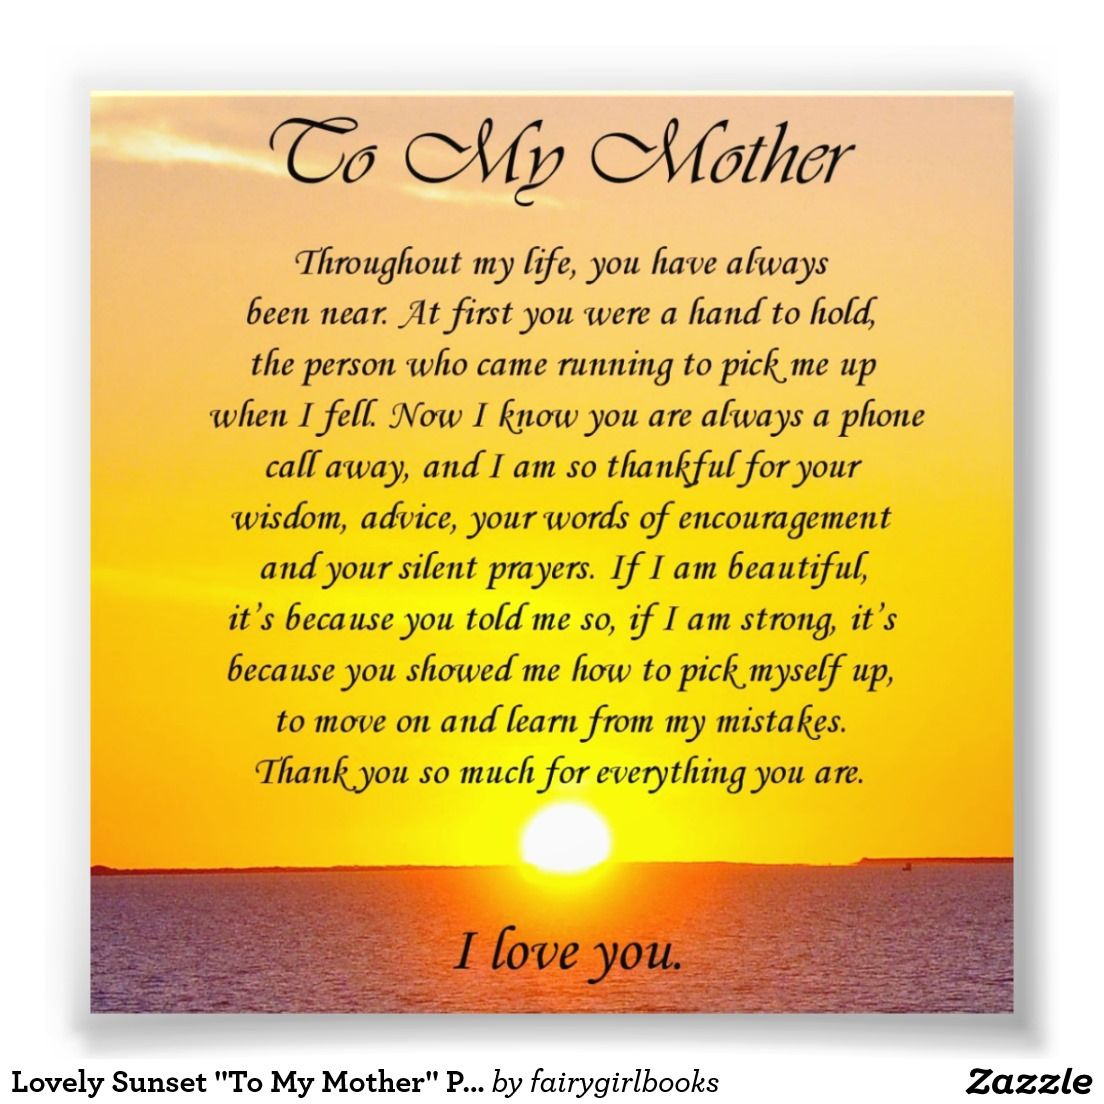 "Quote For My Mom To Thank: Lovely Sunset ""To My Mother"" Photo Verse"